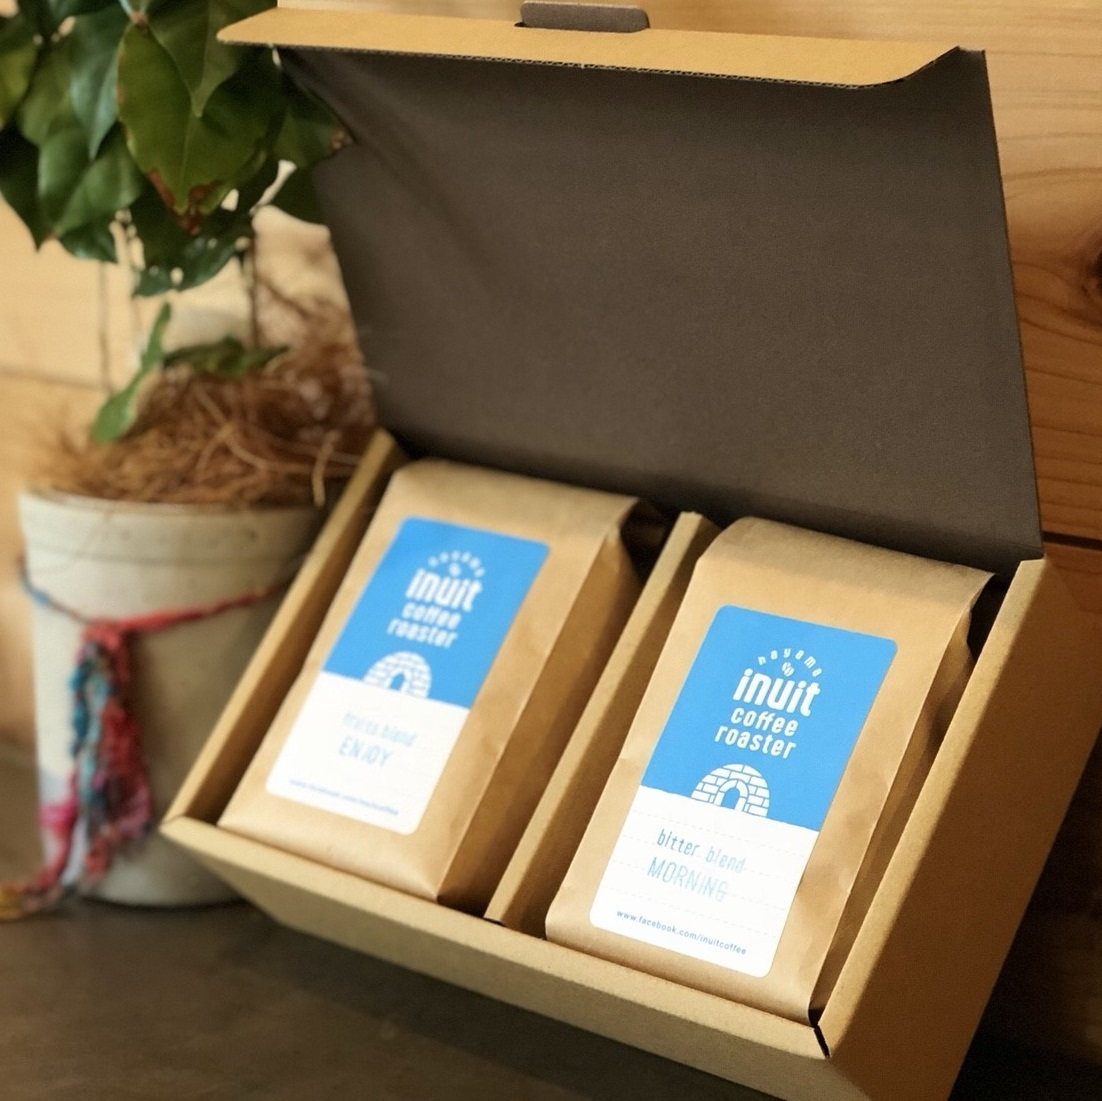 Specialty Coffee ギフトセット 200g×2種類